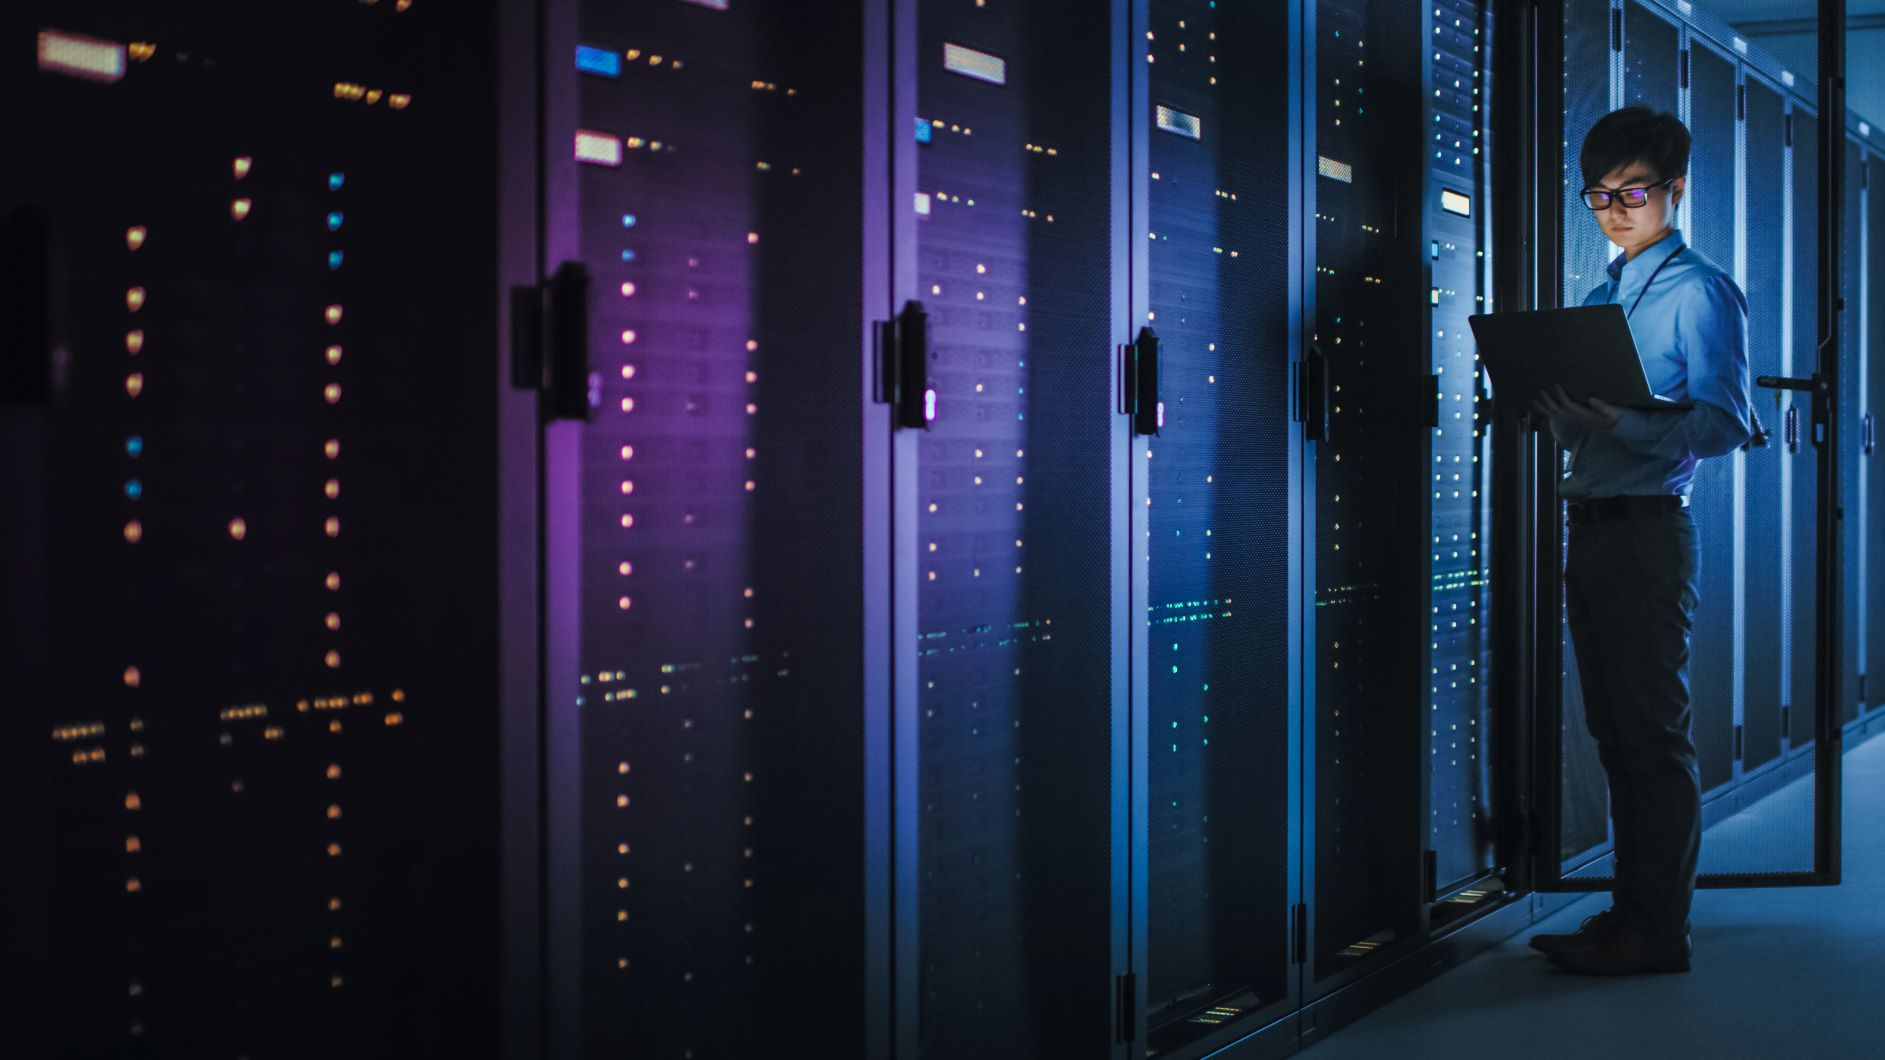 Data center image with person